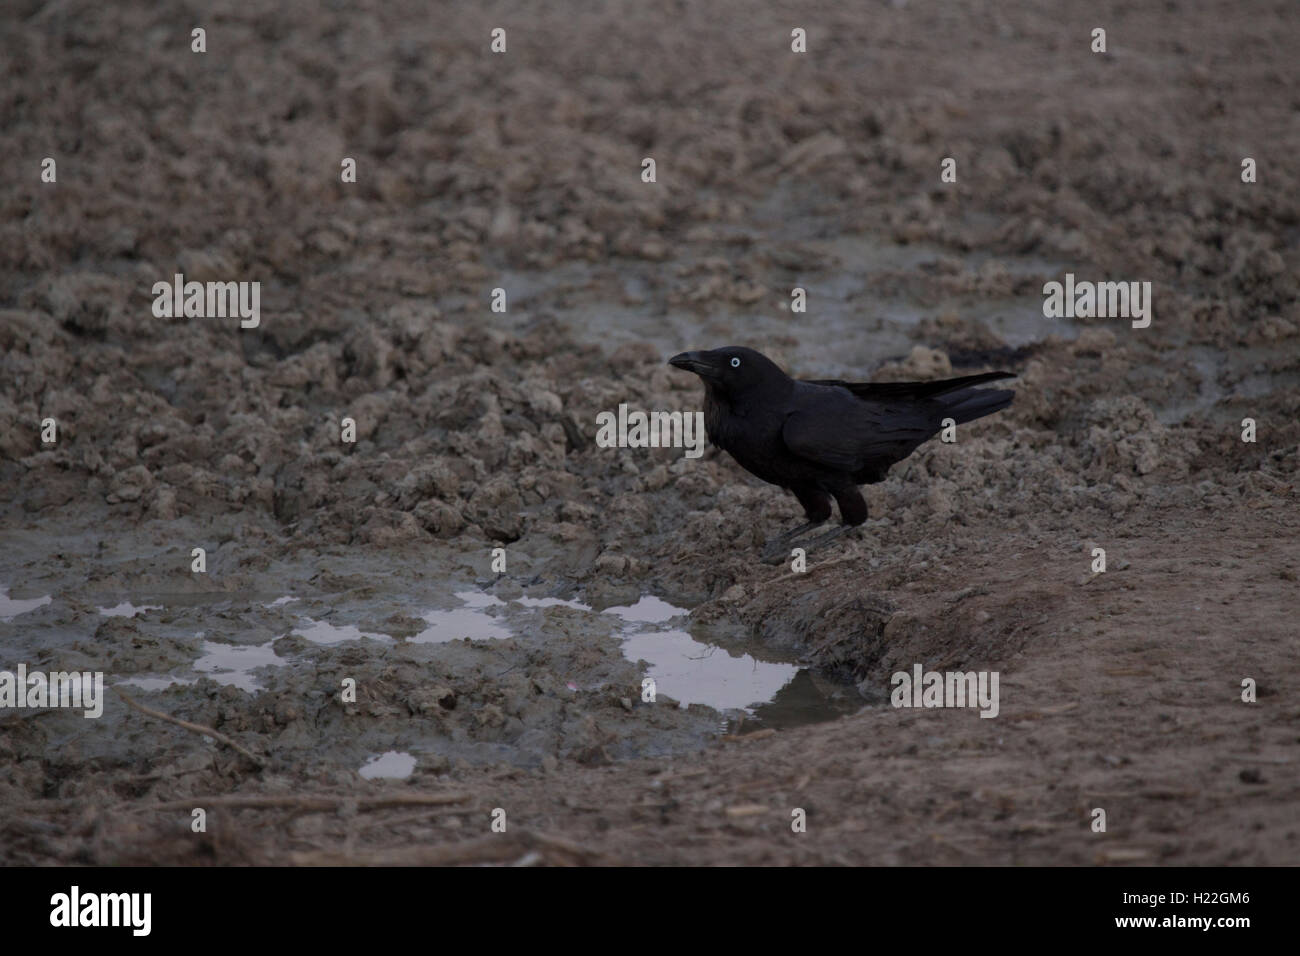 Australian Raven drinking from a puddle at Mungo National Park New South Wales Australia - Stock Image